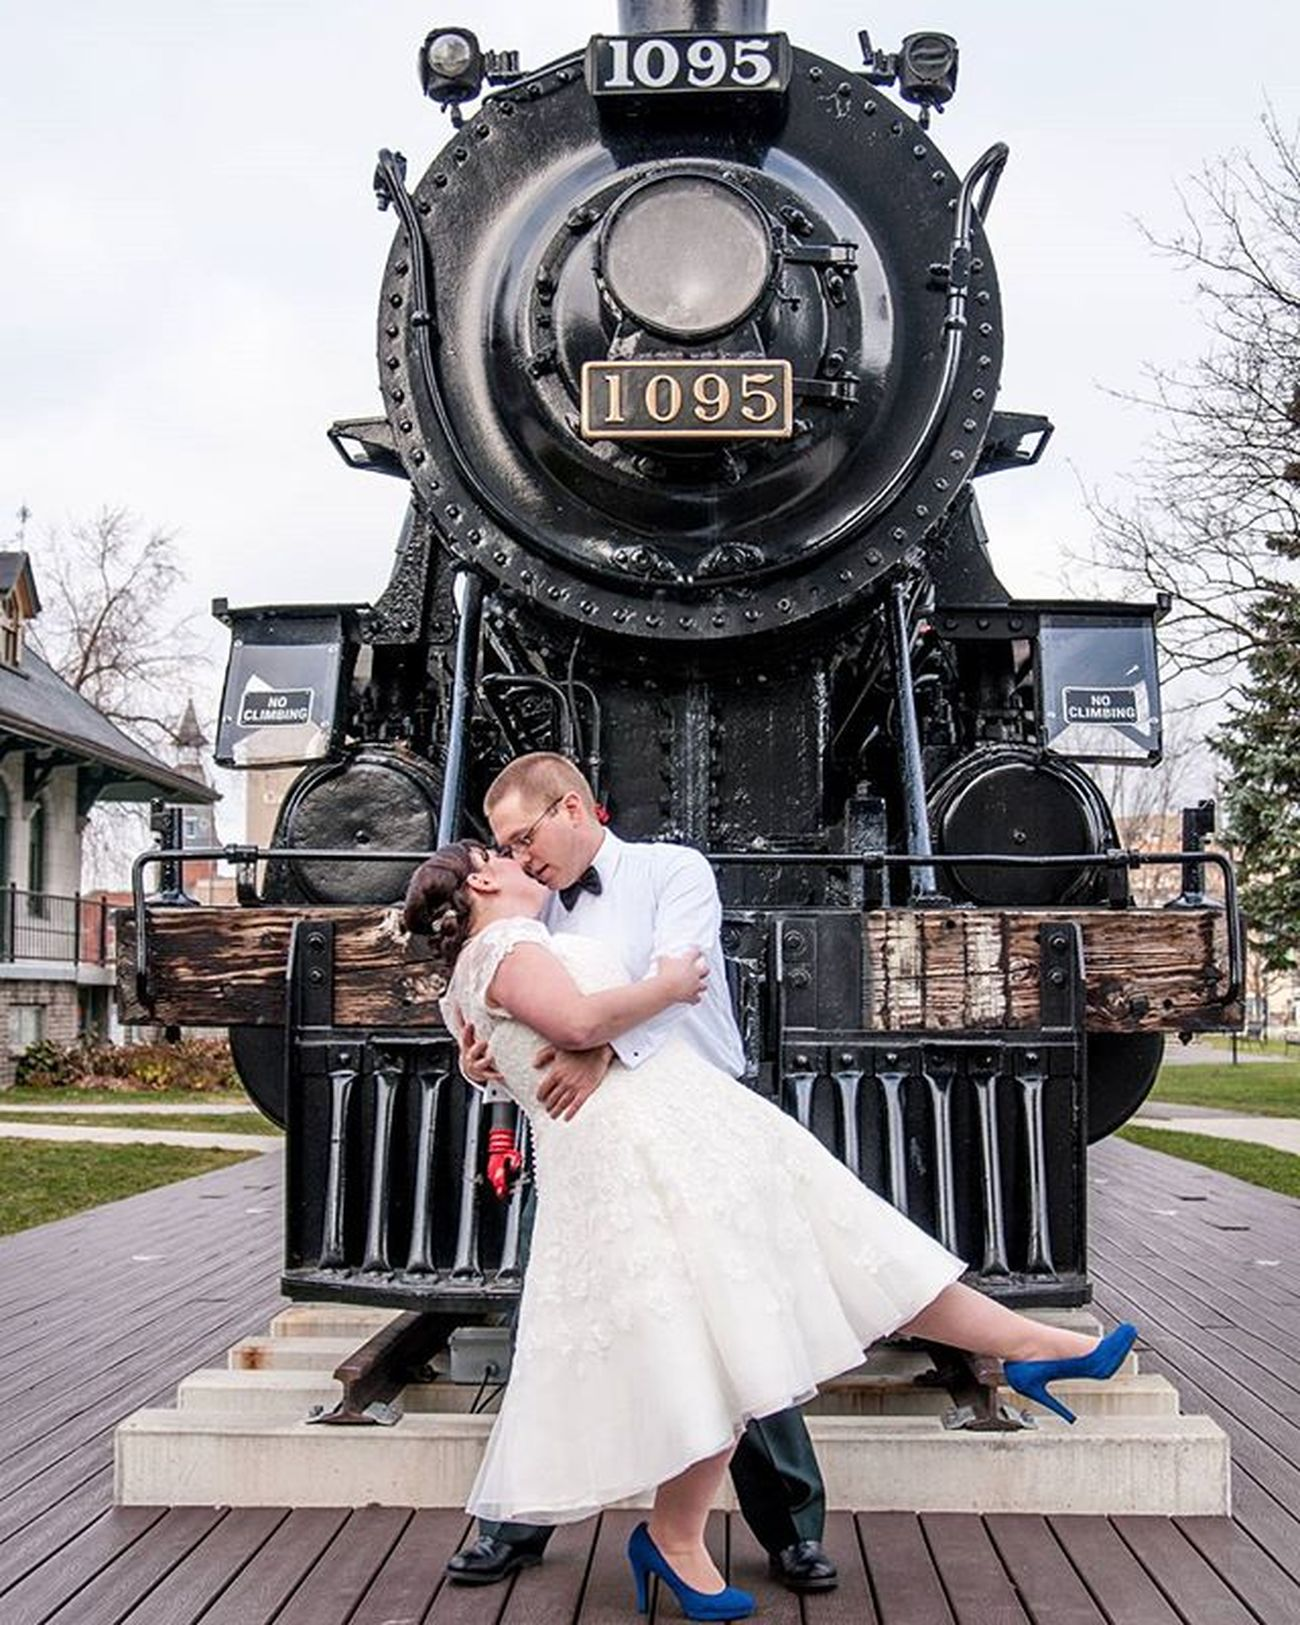 Downtownkingston FirstLook Ygk Letsgetmarried 2015weddings Weddings2015 Nikon Nikonwedding